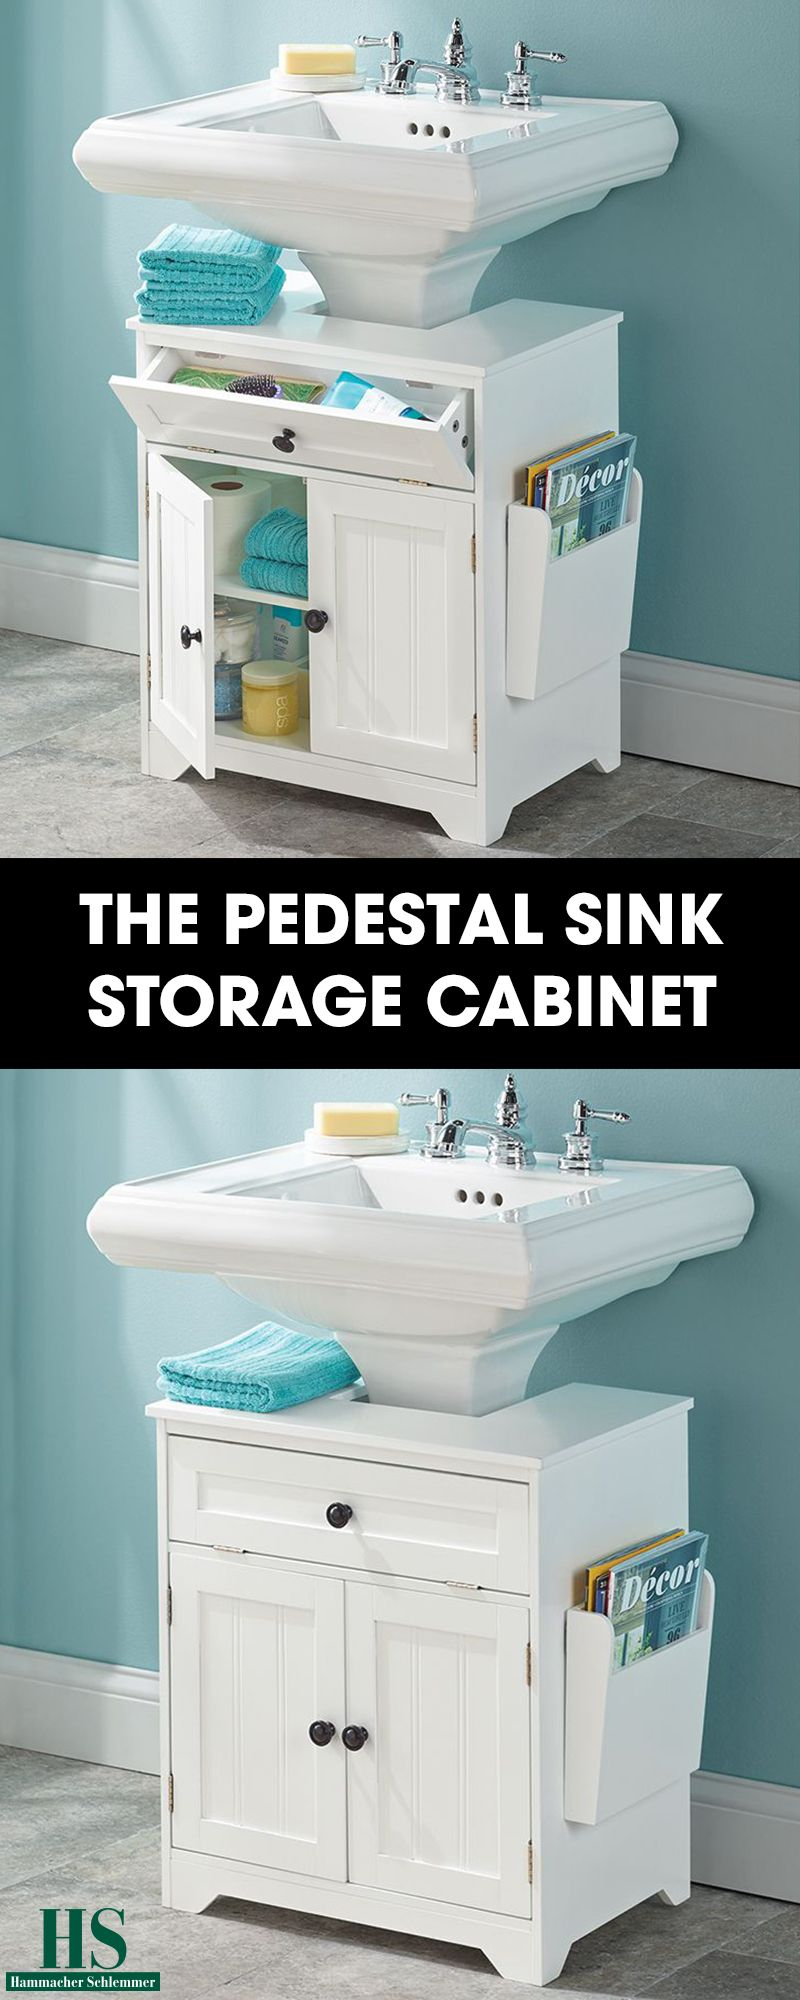 The Pedestal Sink Storage Cabinet This Is The Bathroom Cabinet